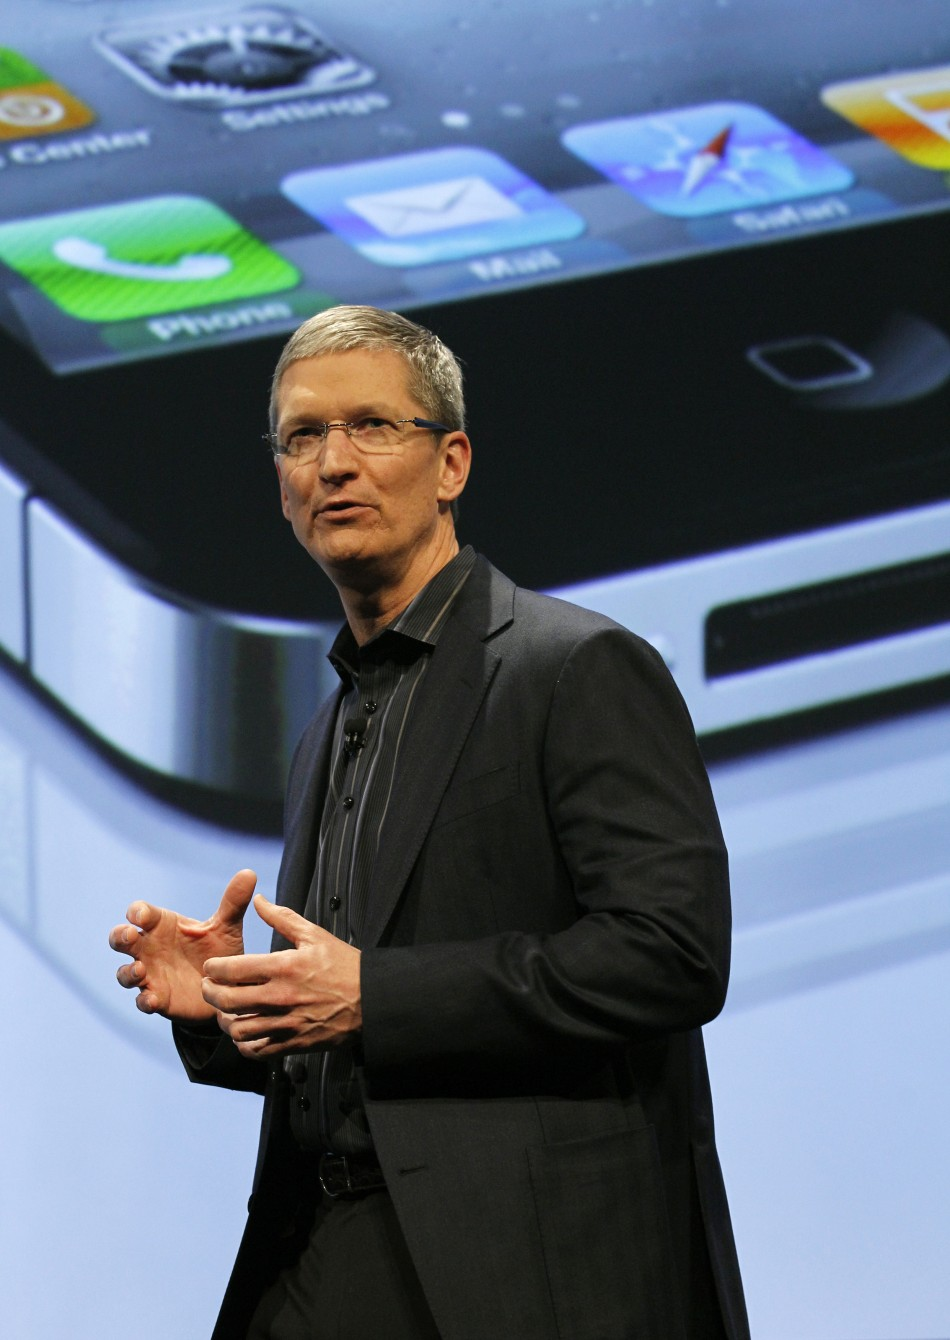 Tim Cook speaking during Verizon's iPhone 4 launch event in New York